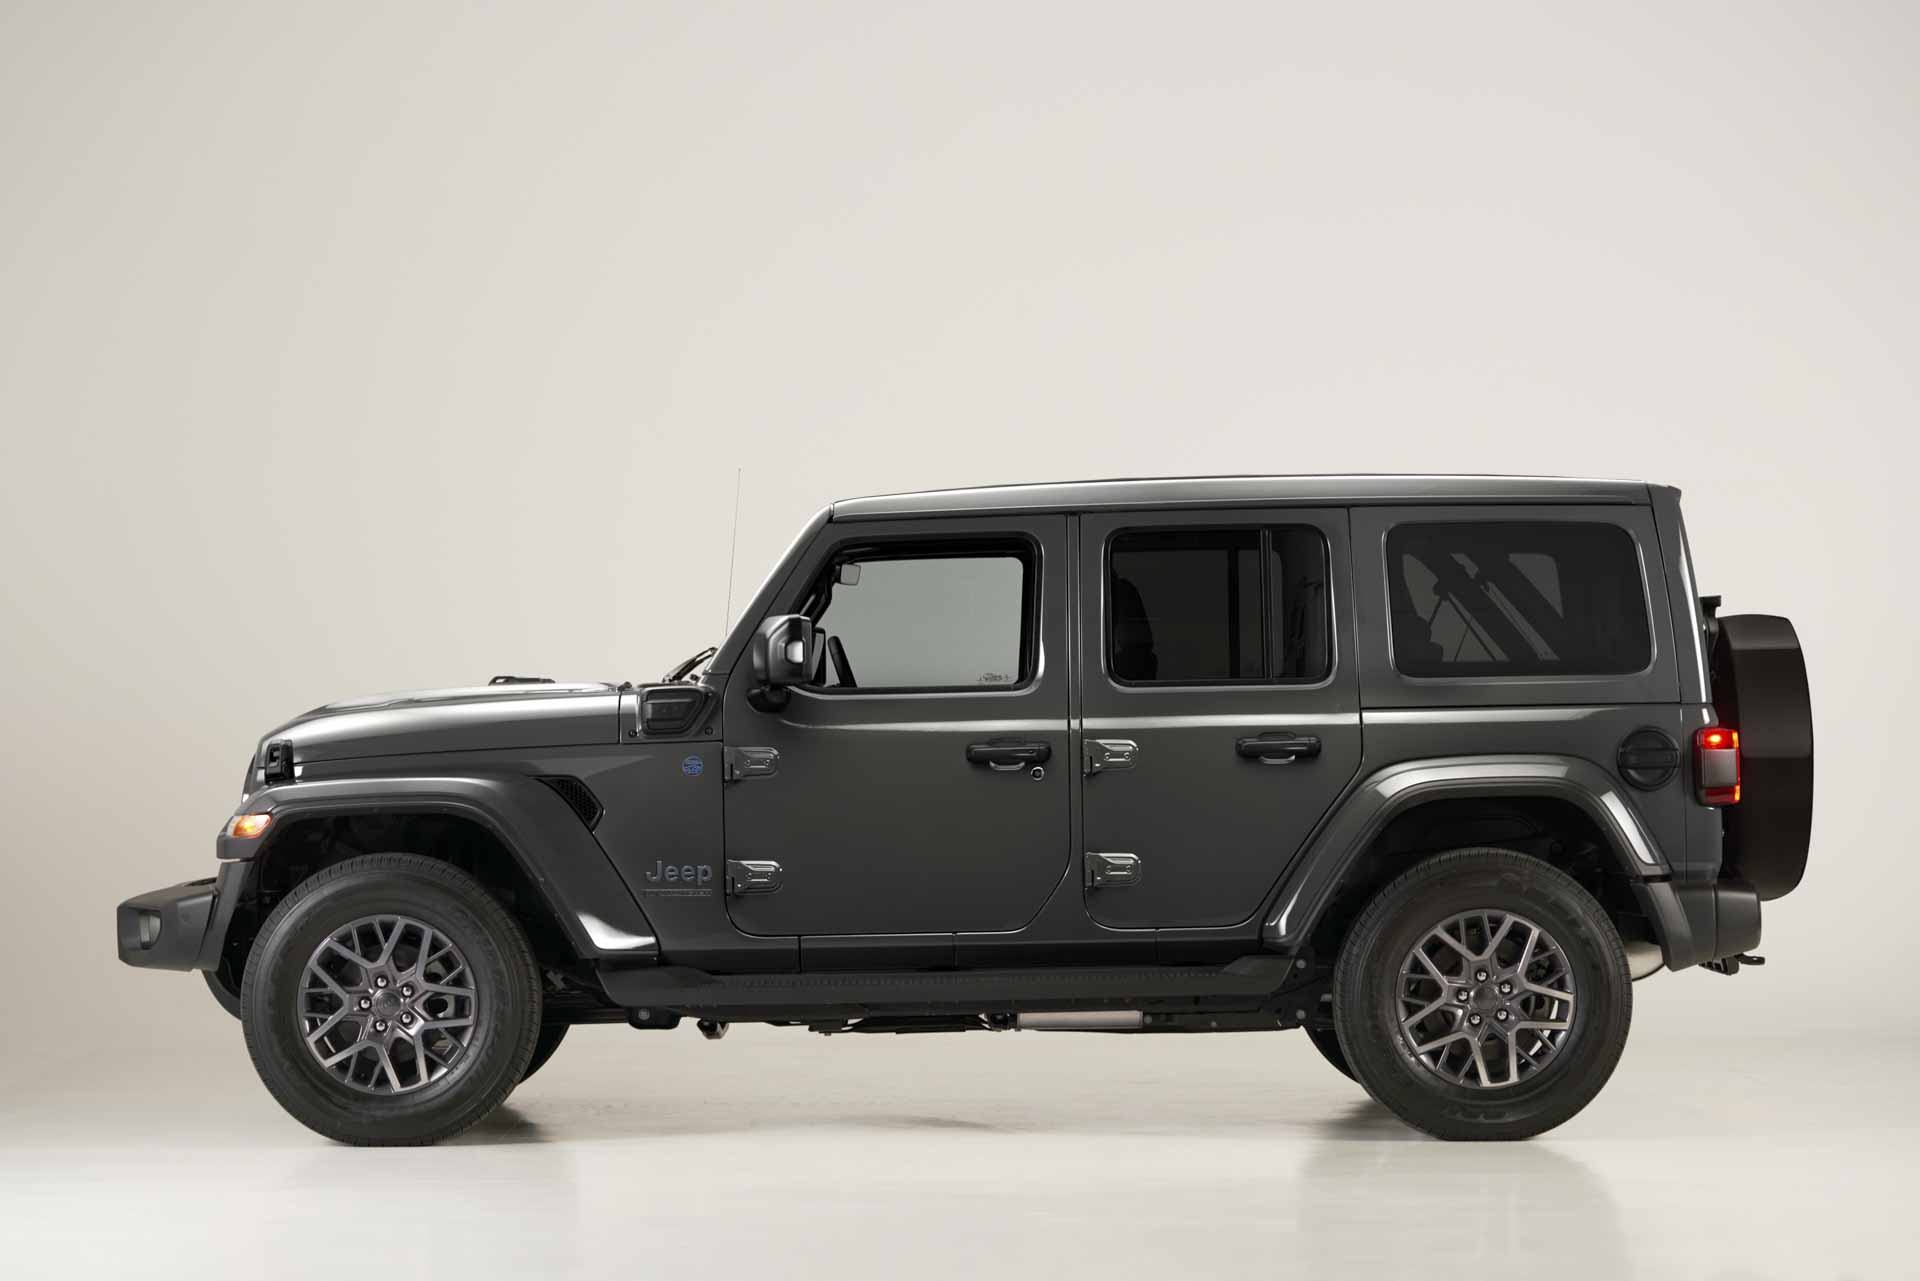 kien-jeep-wrangler-4xe-first-edition